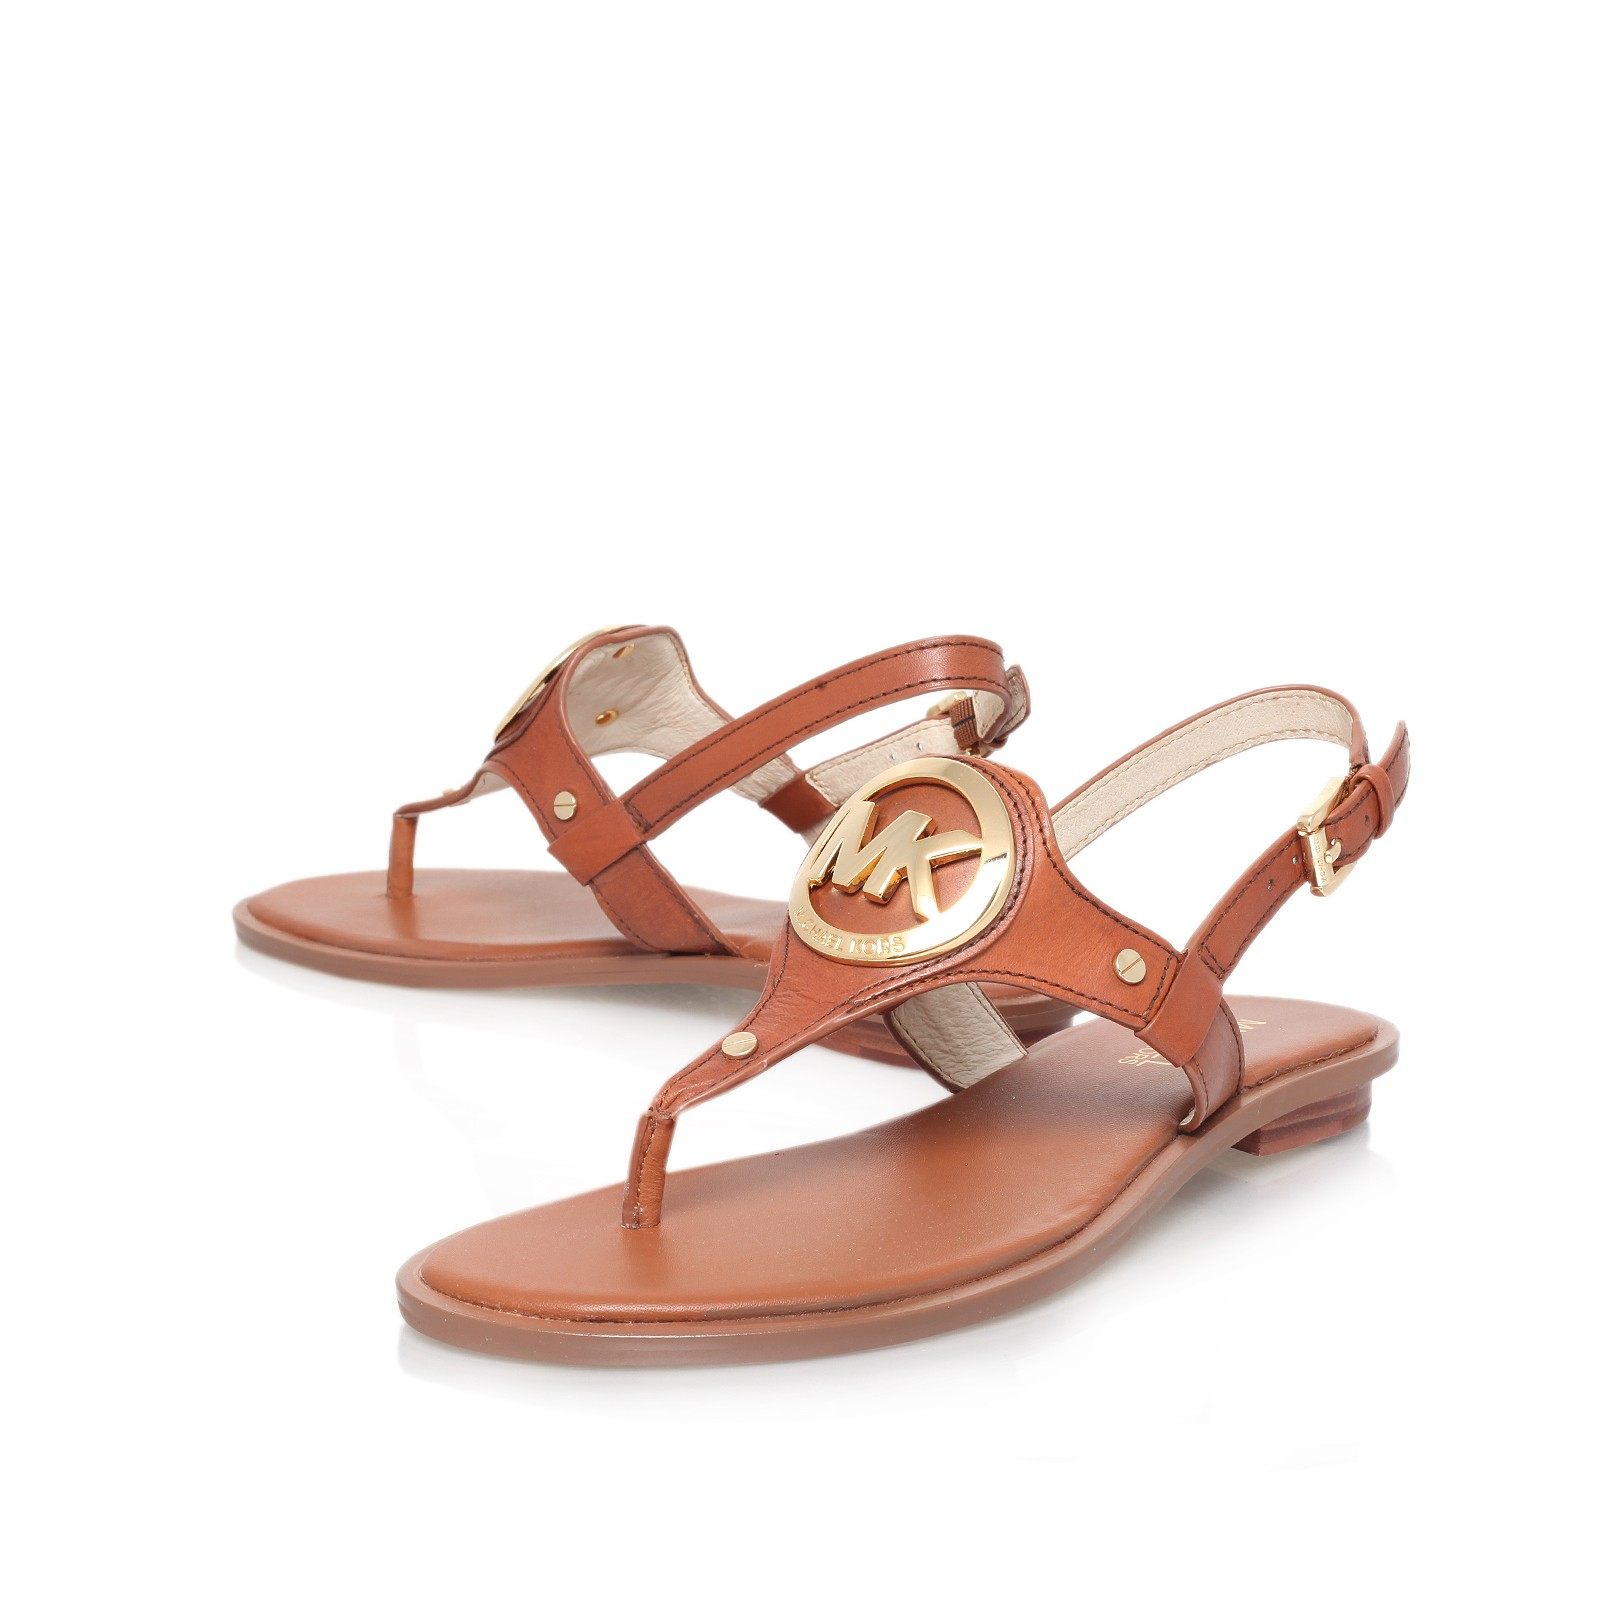 48ca1a27d50 MICHAEL Michael Kors Lee Leather Flat T-strap Sandal in Brown - Lyst